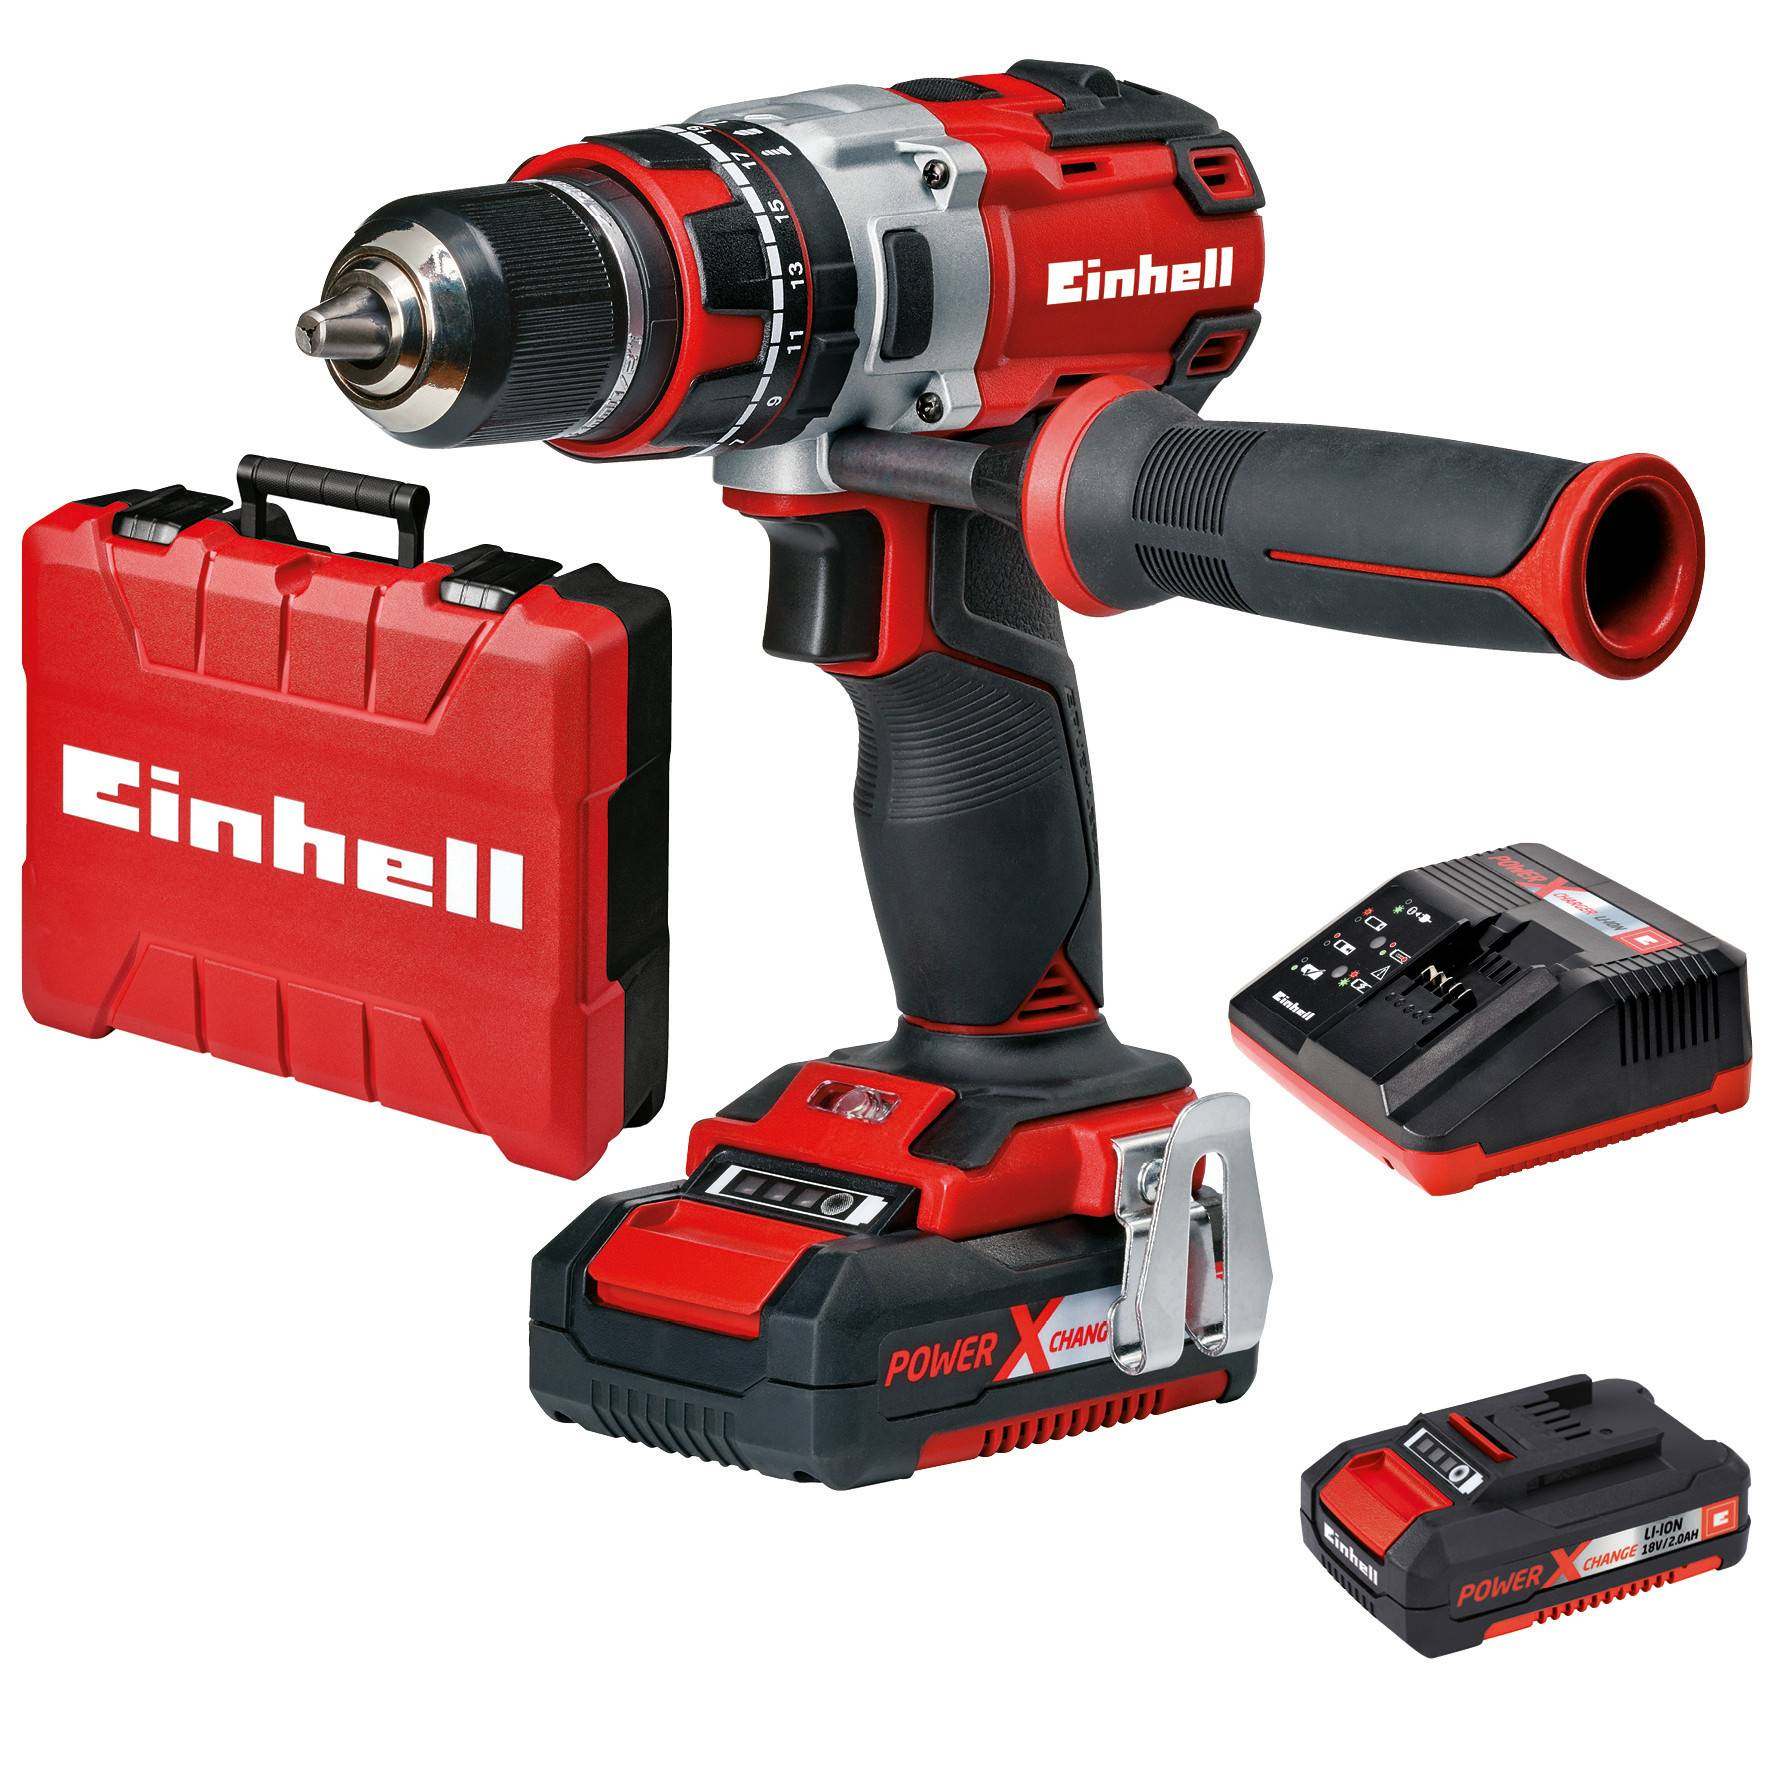 Einhell Power X-Change TE-CD 18V 2Ah iskevä akkuporakone